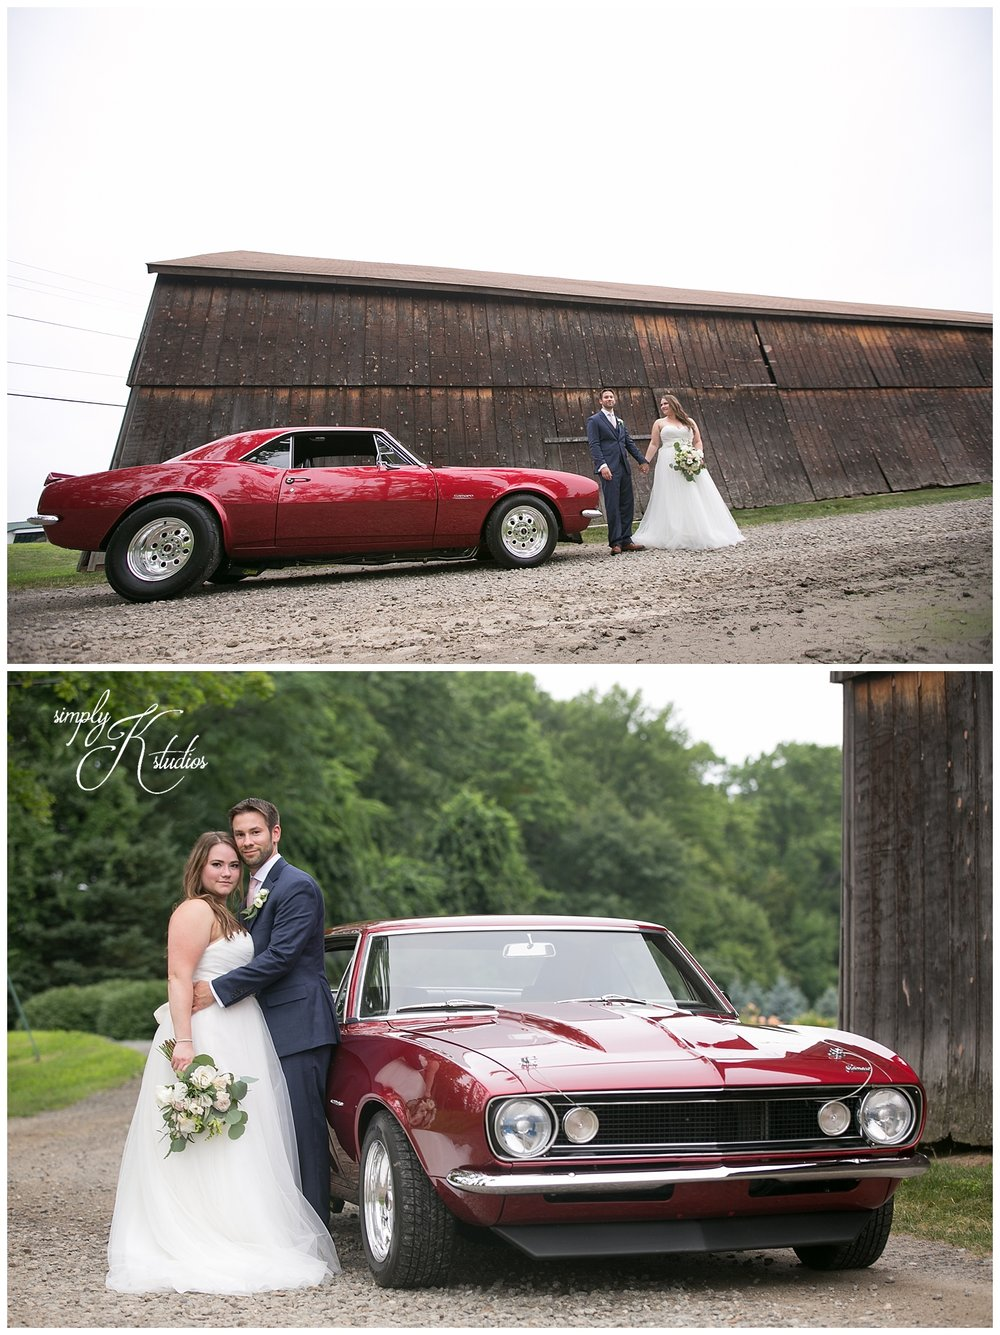 Vintage Camaro at a Wedding.jpg